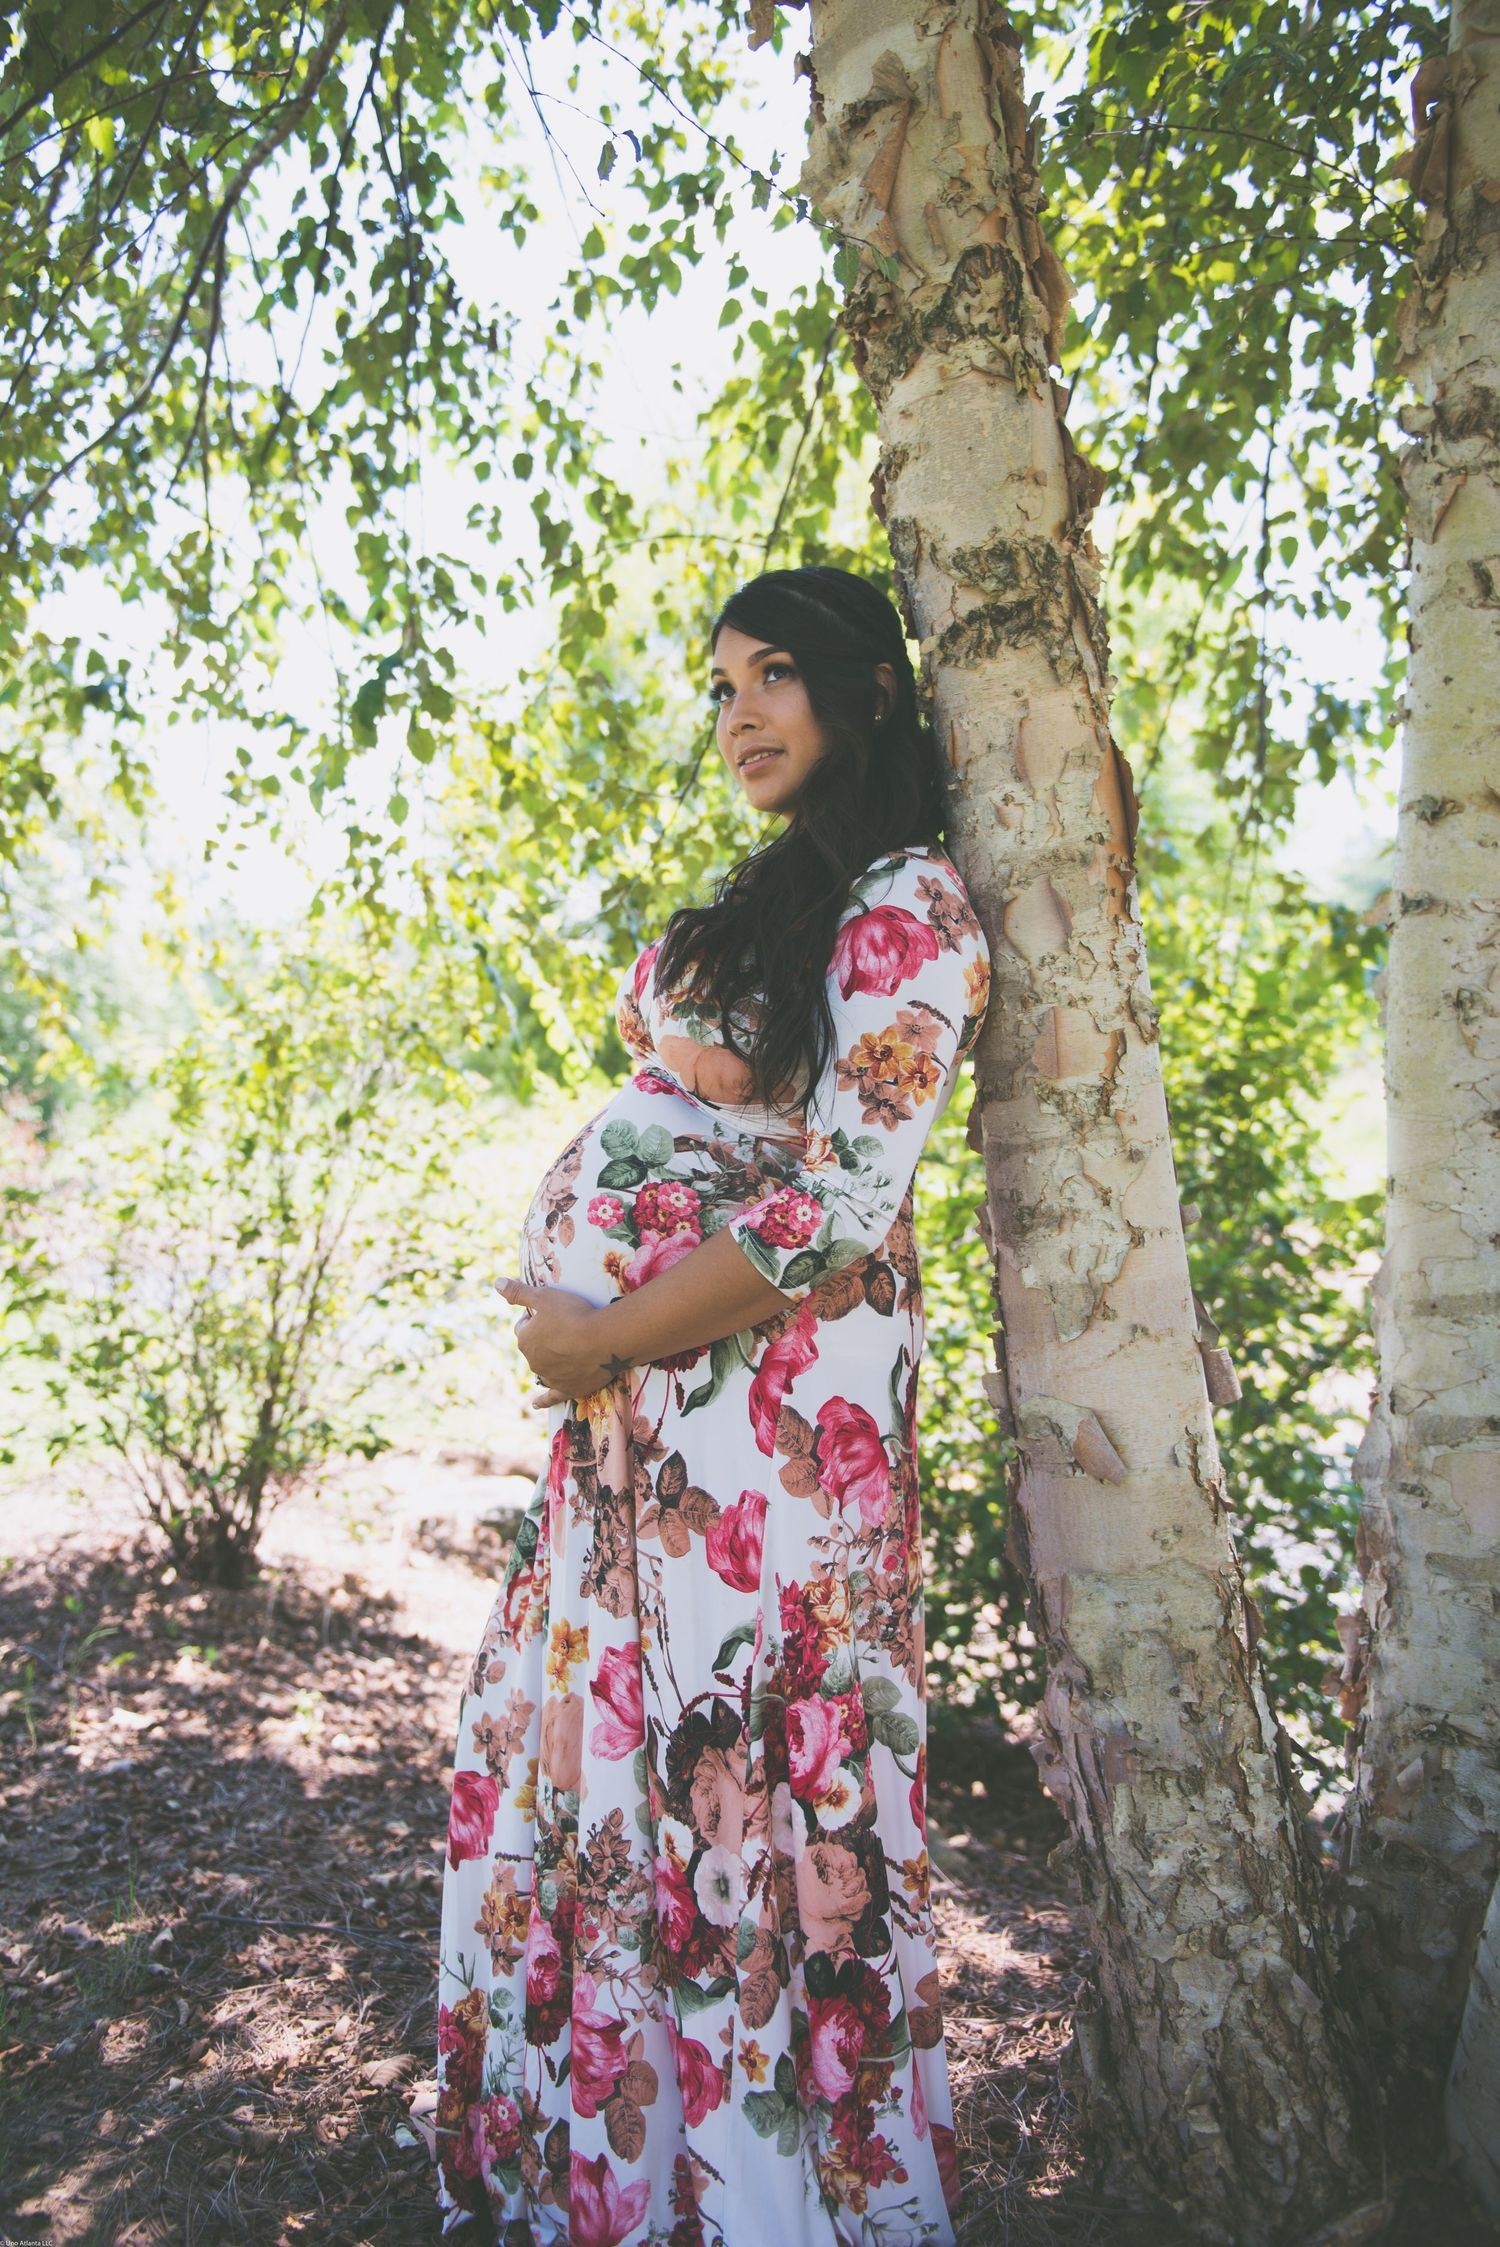 Pregnant mother in flowery dress on tree